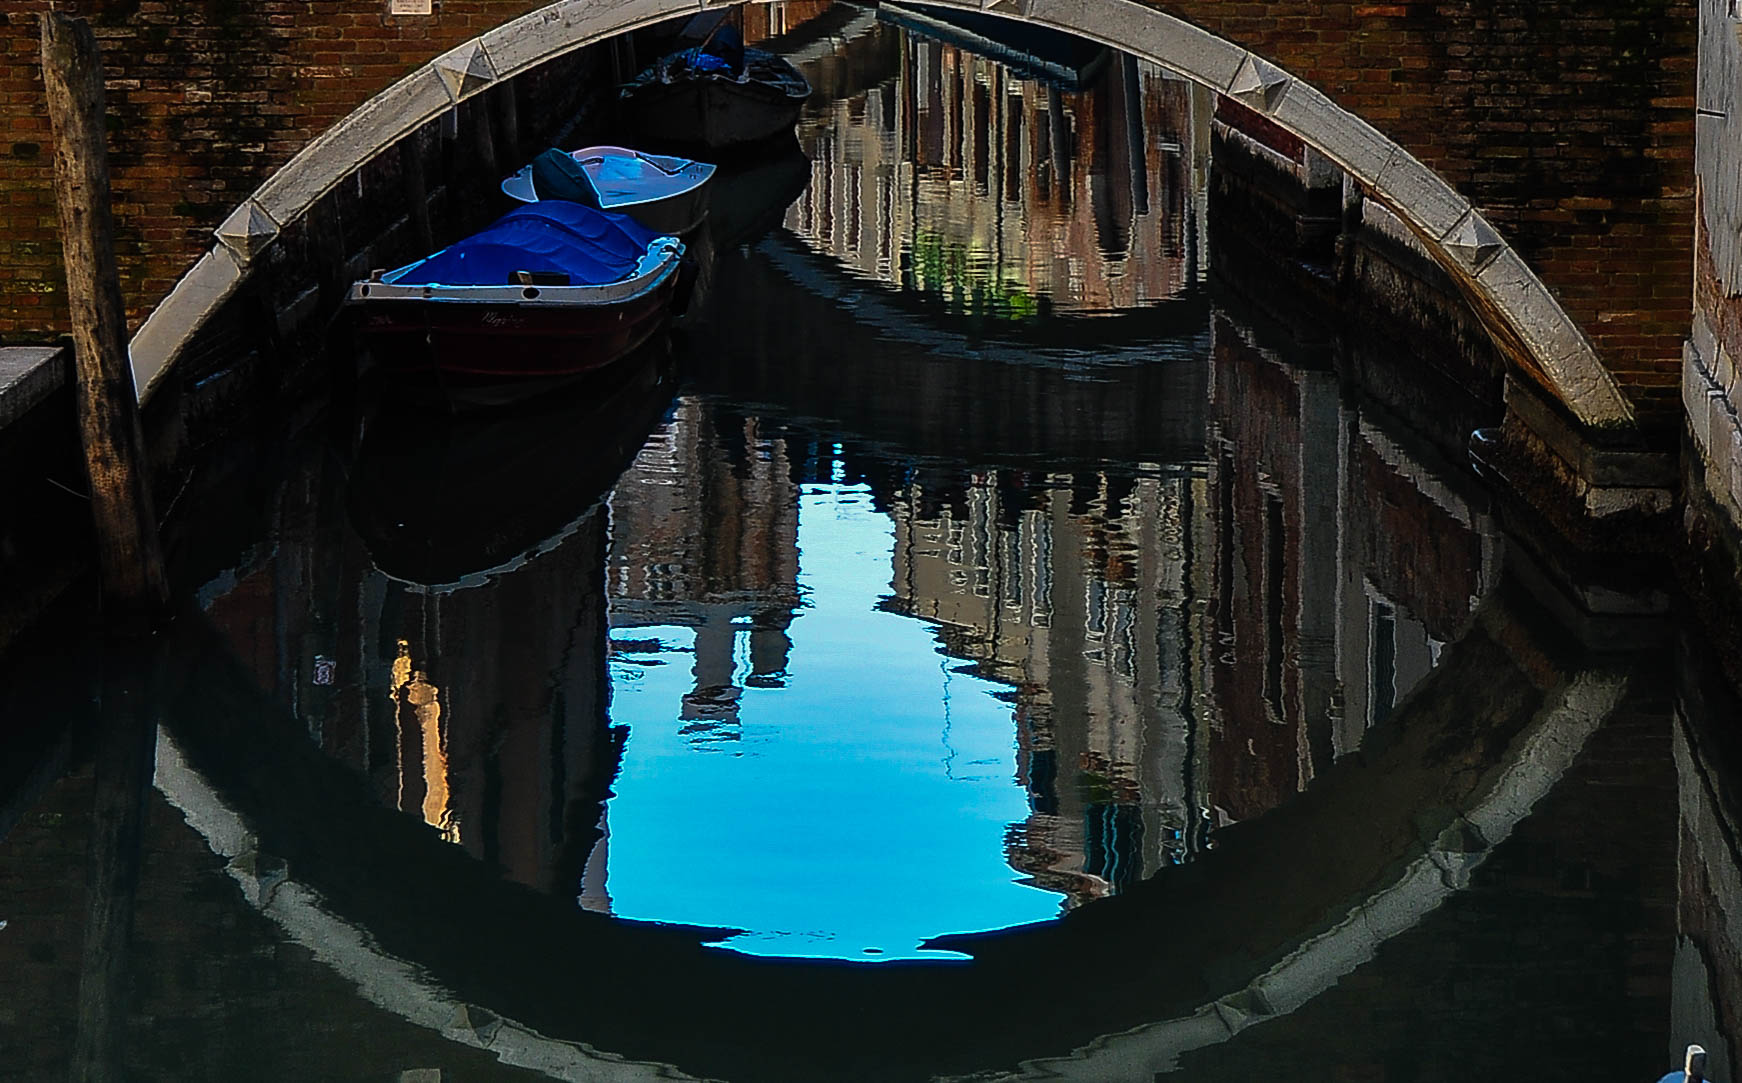 Reflecting in the canals of Venice......